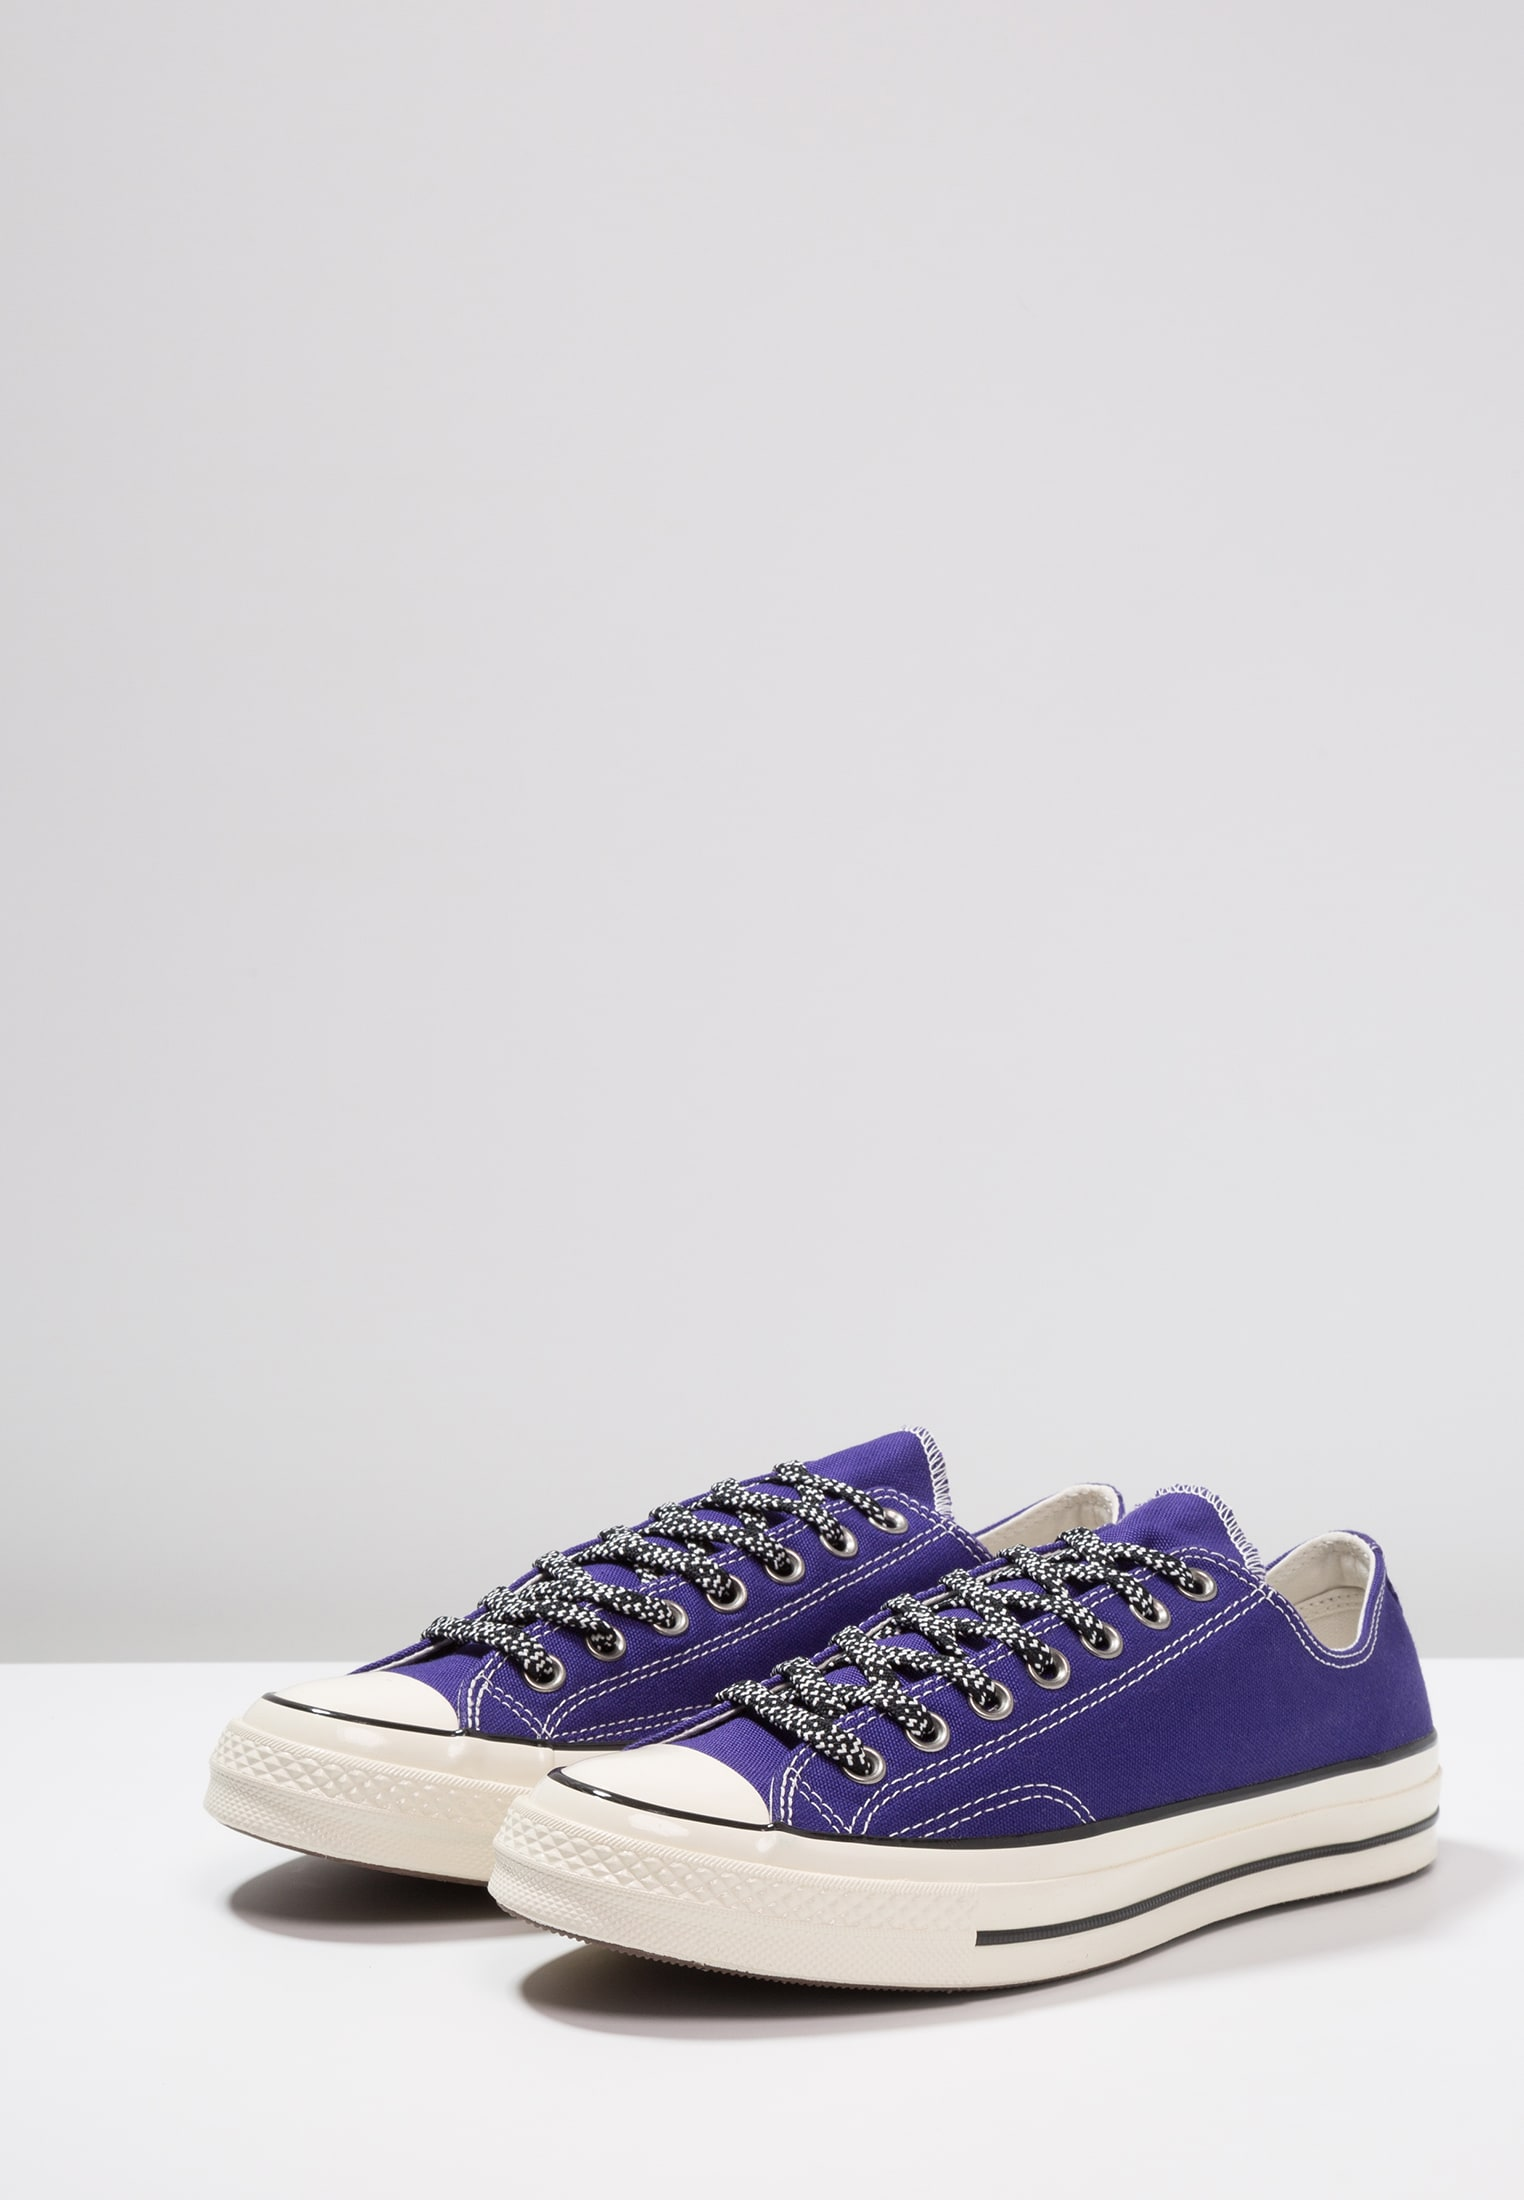 Very Goods | Converse CHUCK 70 - Trainers - new orchid/black ...